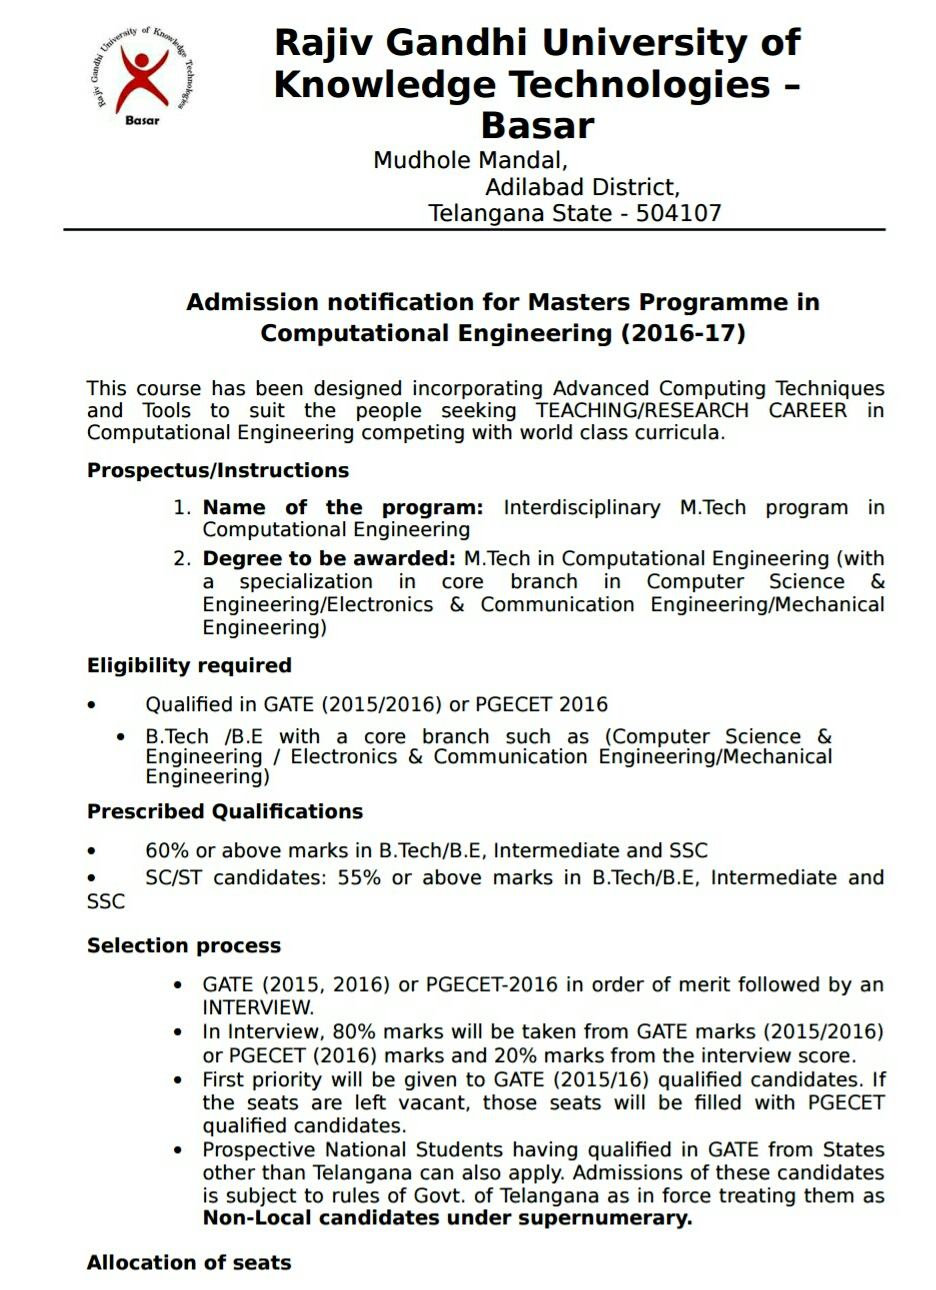 Ts Basar iiit M.Tech Admissions 2016-17